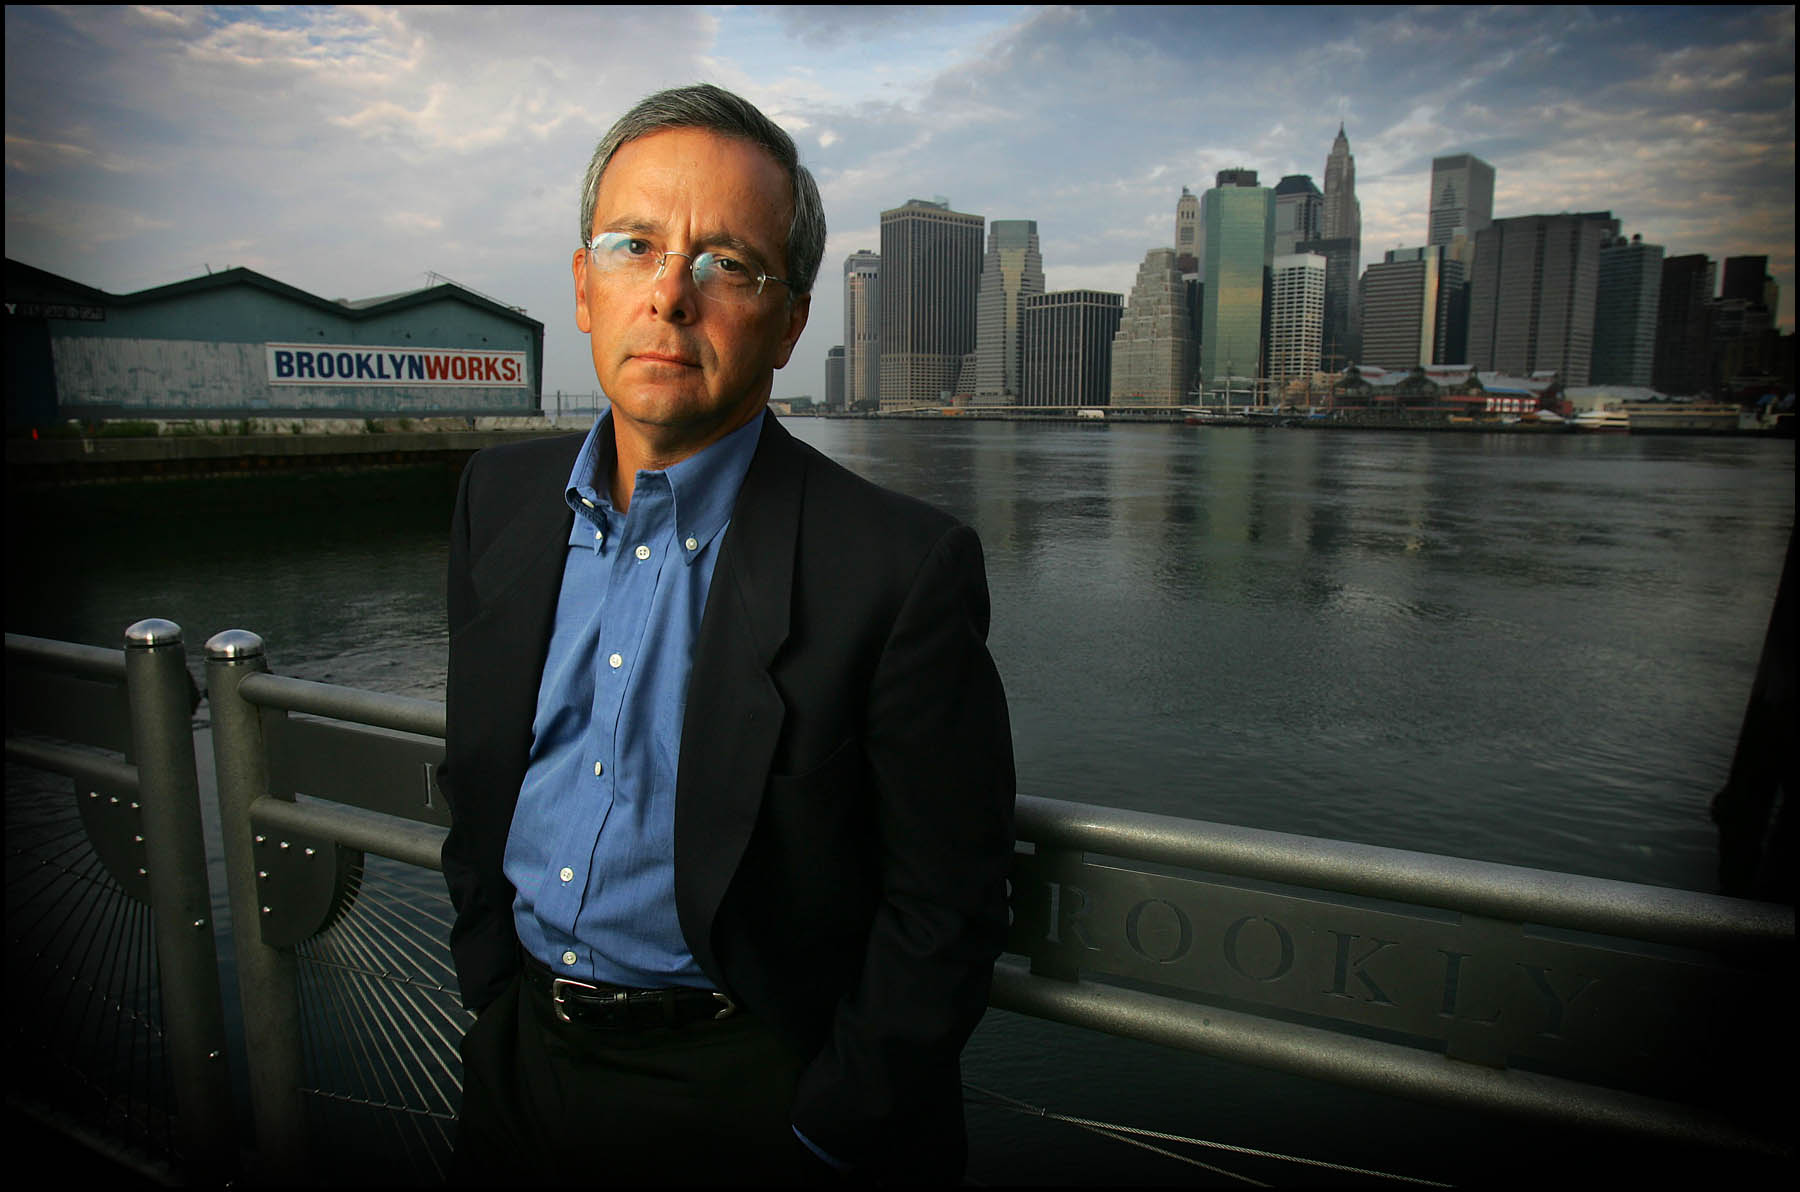 Sports media legend Mike Lupica photographed on the Brooklyn waterfront.